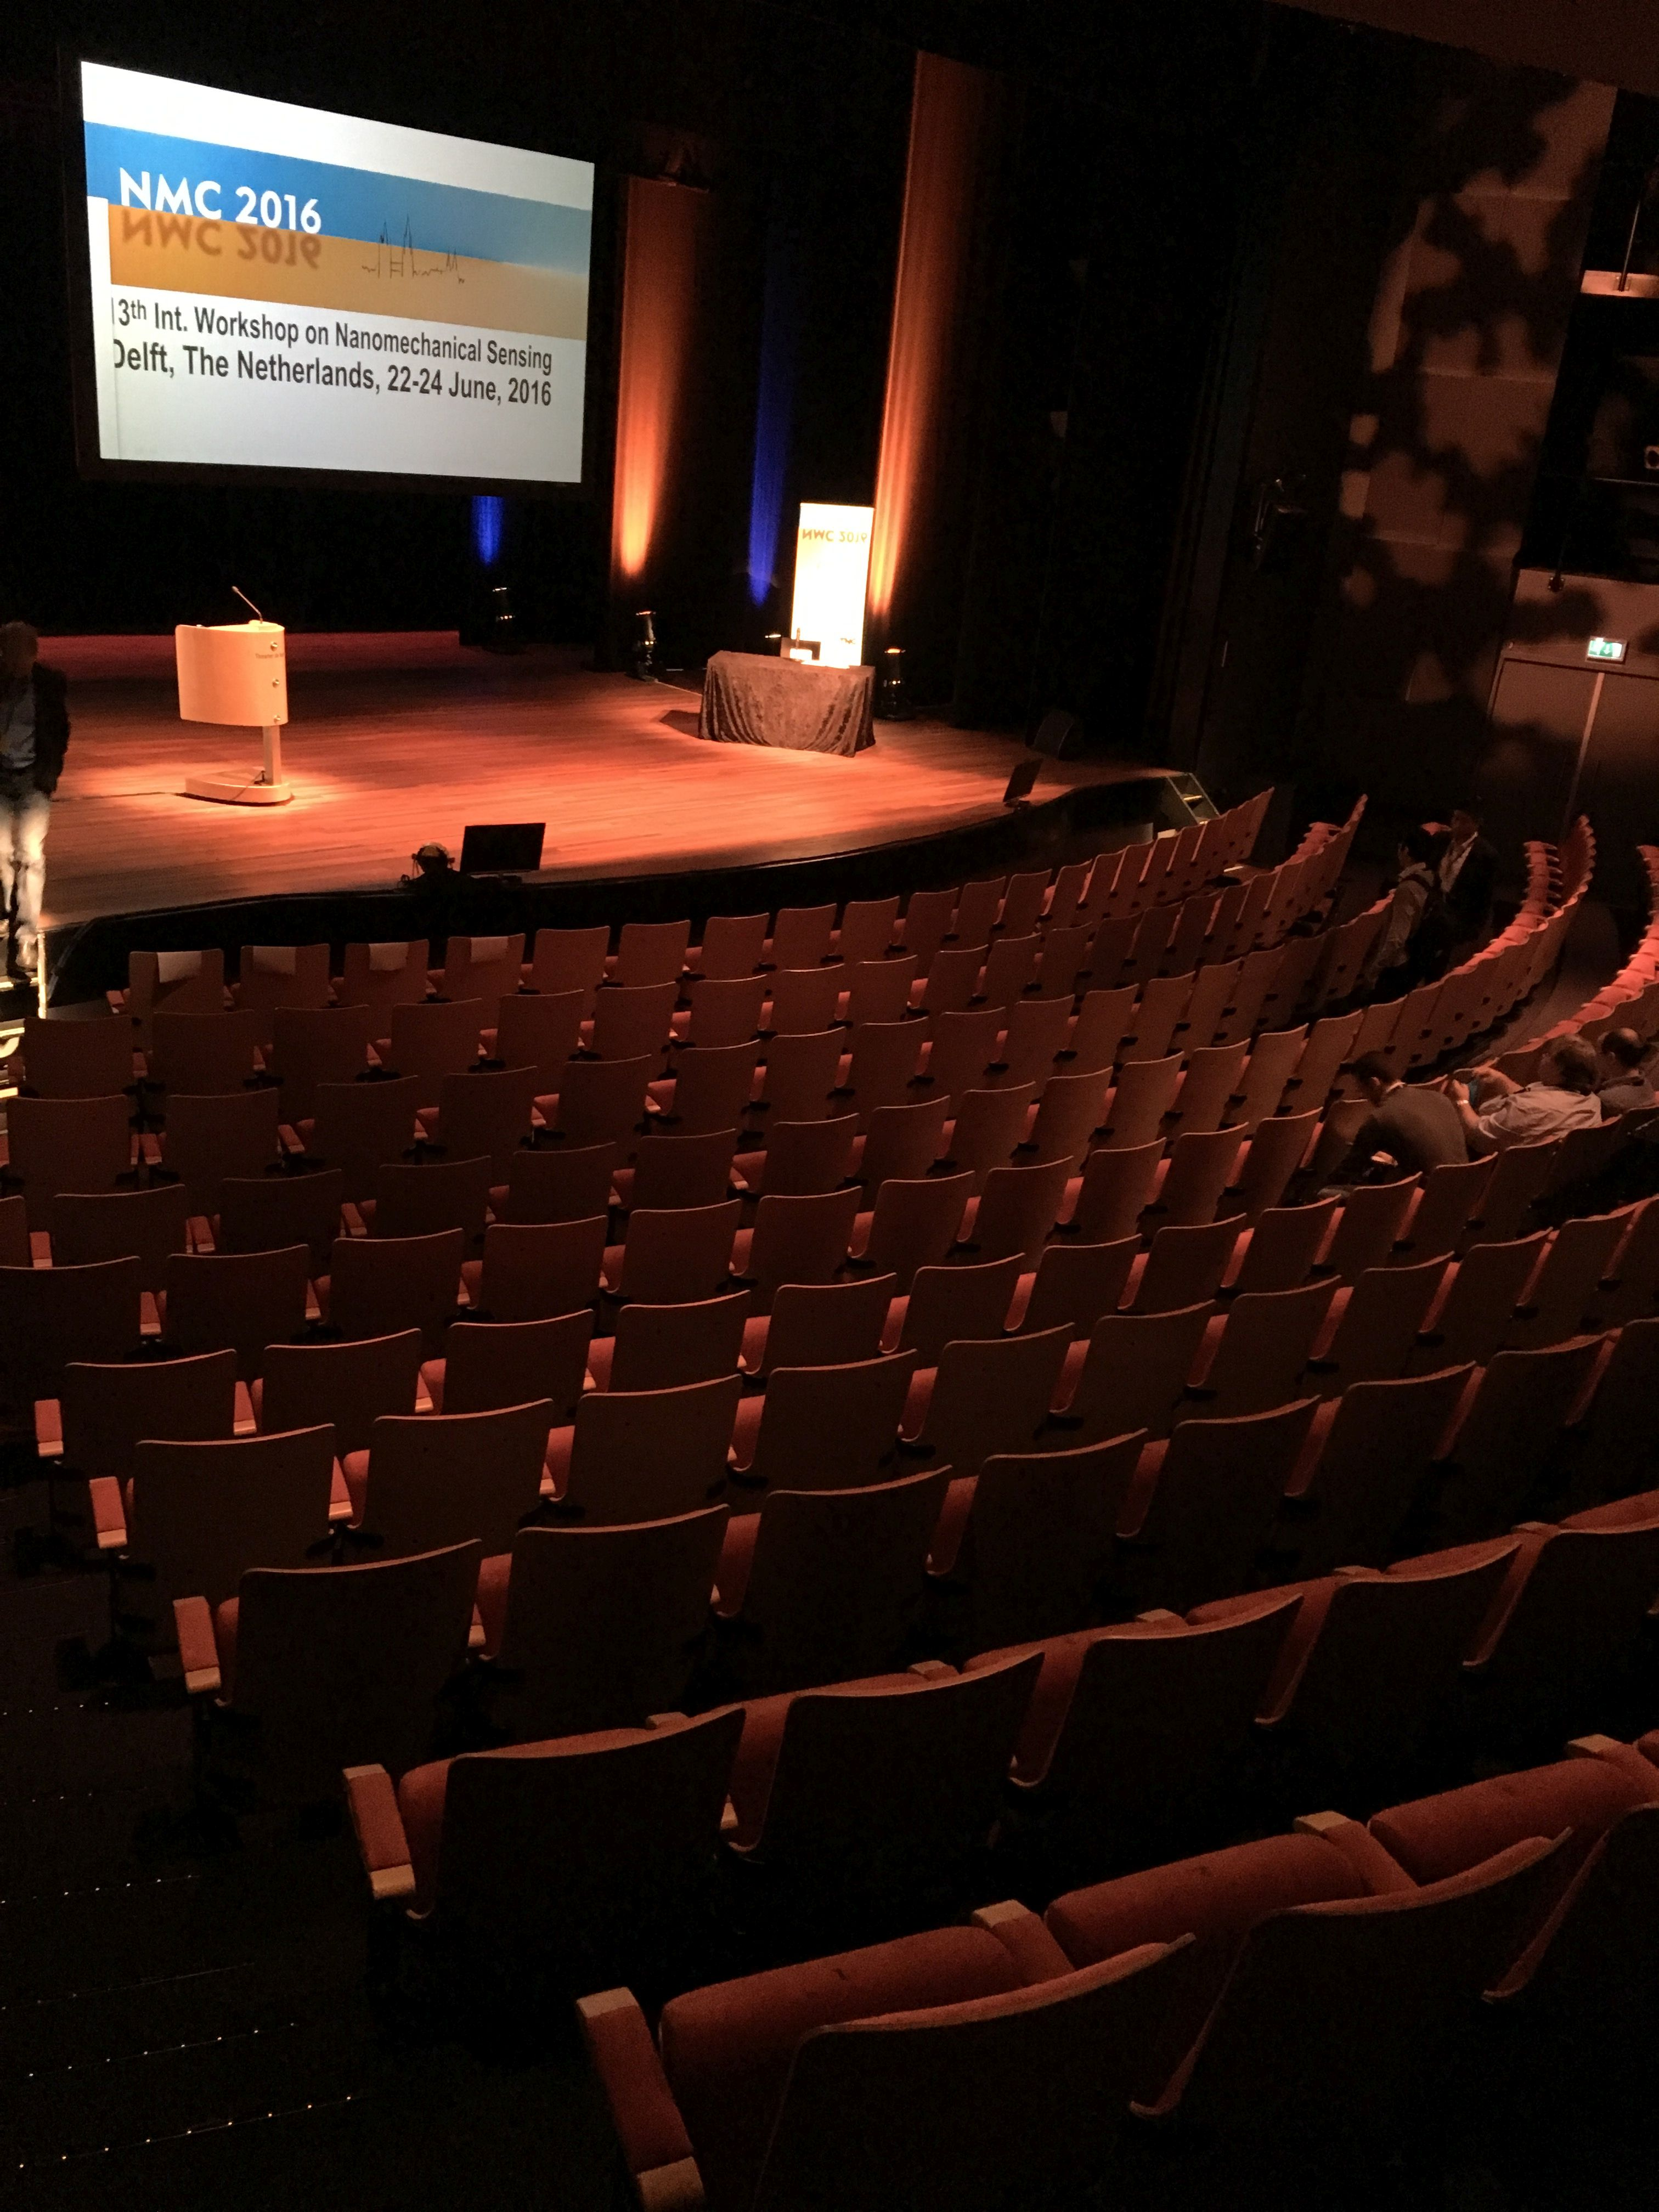 auditorium in readyness for NMC 2016